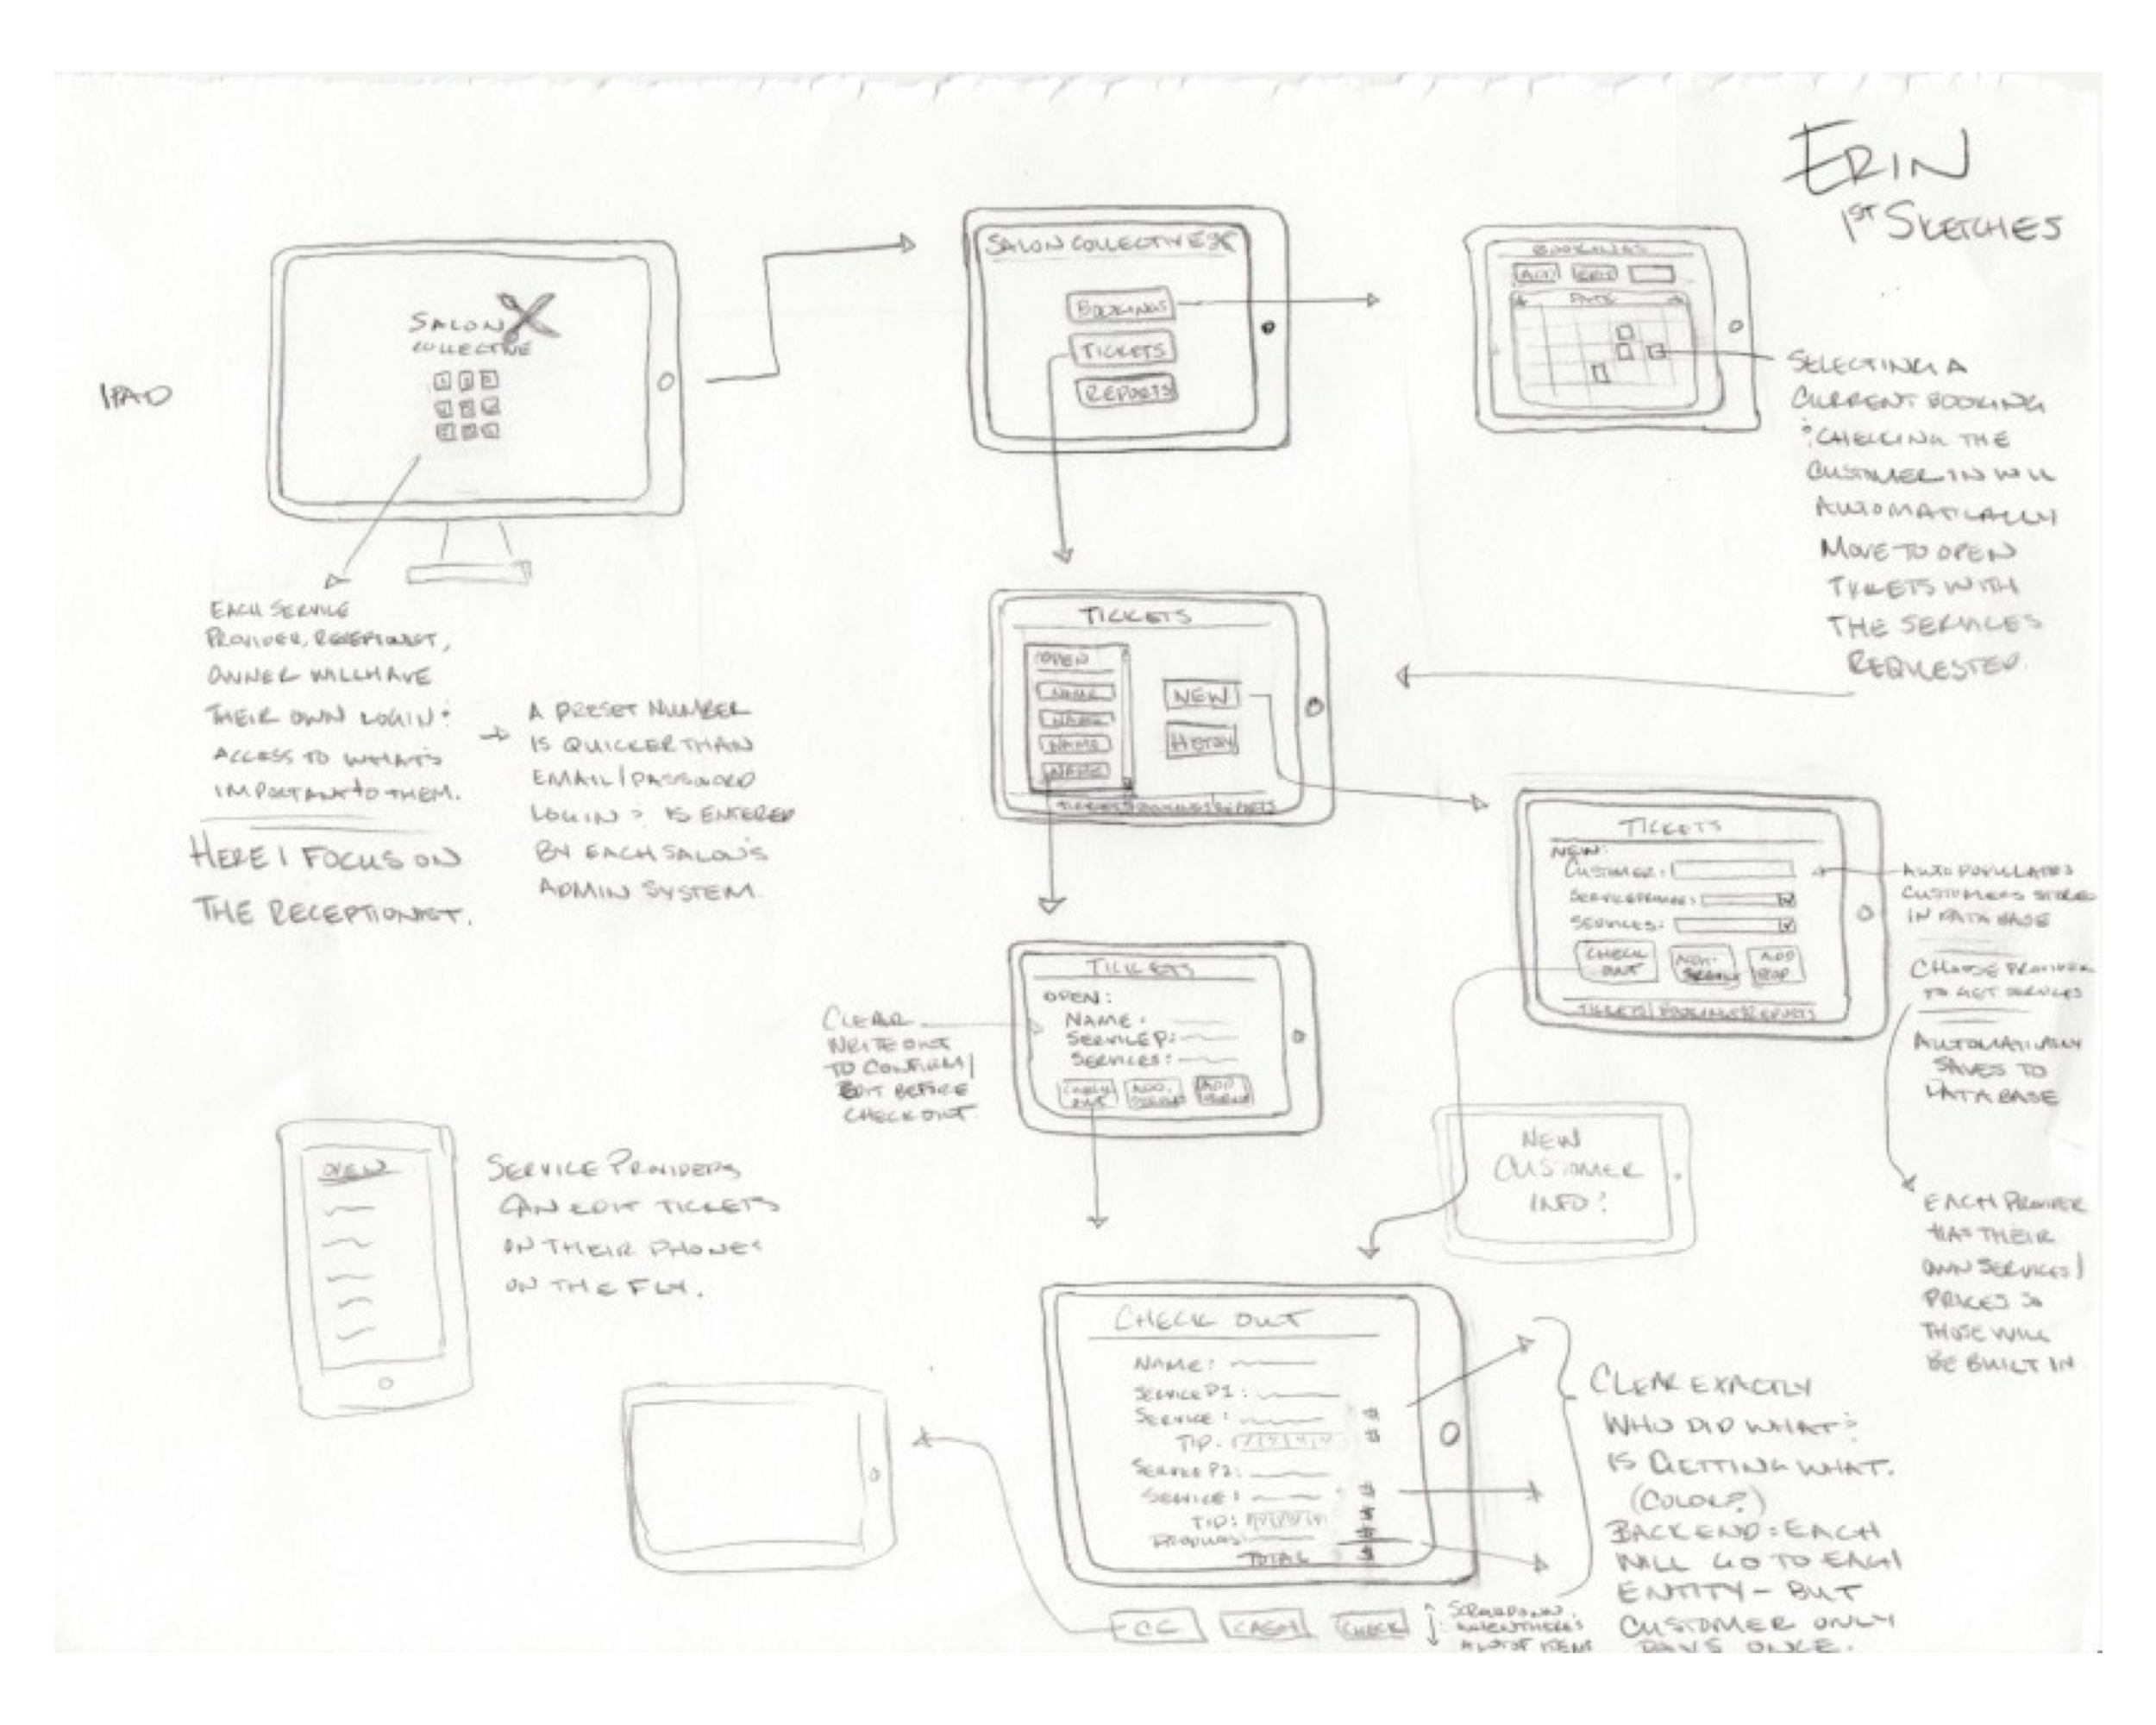 wireframe Sketches - Lo-fidelity design sketches informed by the research set out an initial plan to simplify the check out process. I focused on clear, direct design elements to ensure a forward moving process flow with minimal backtracking, heightened error prevention, and a connection with associated tasks.